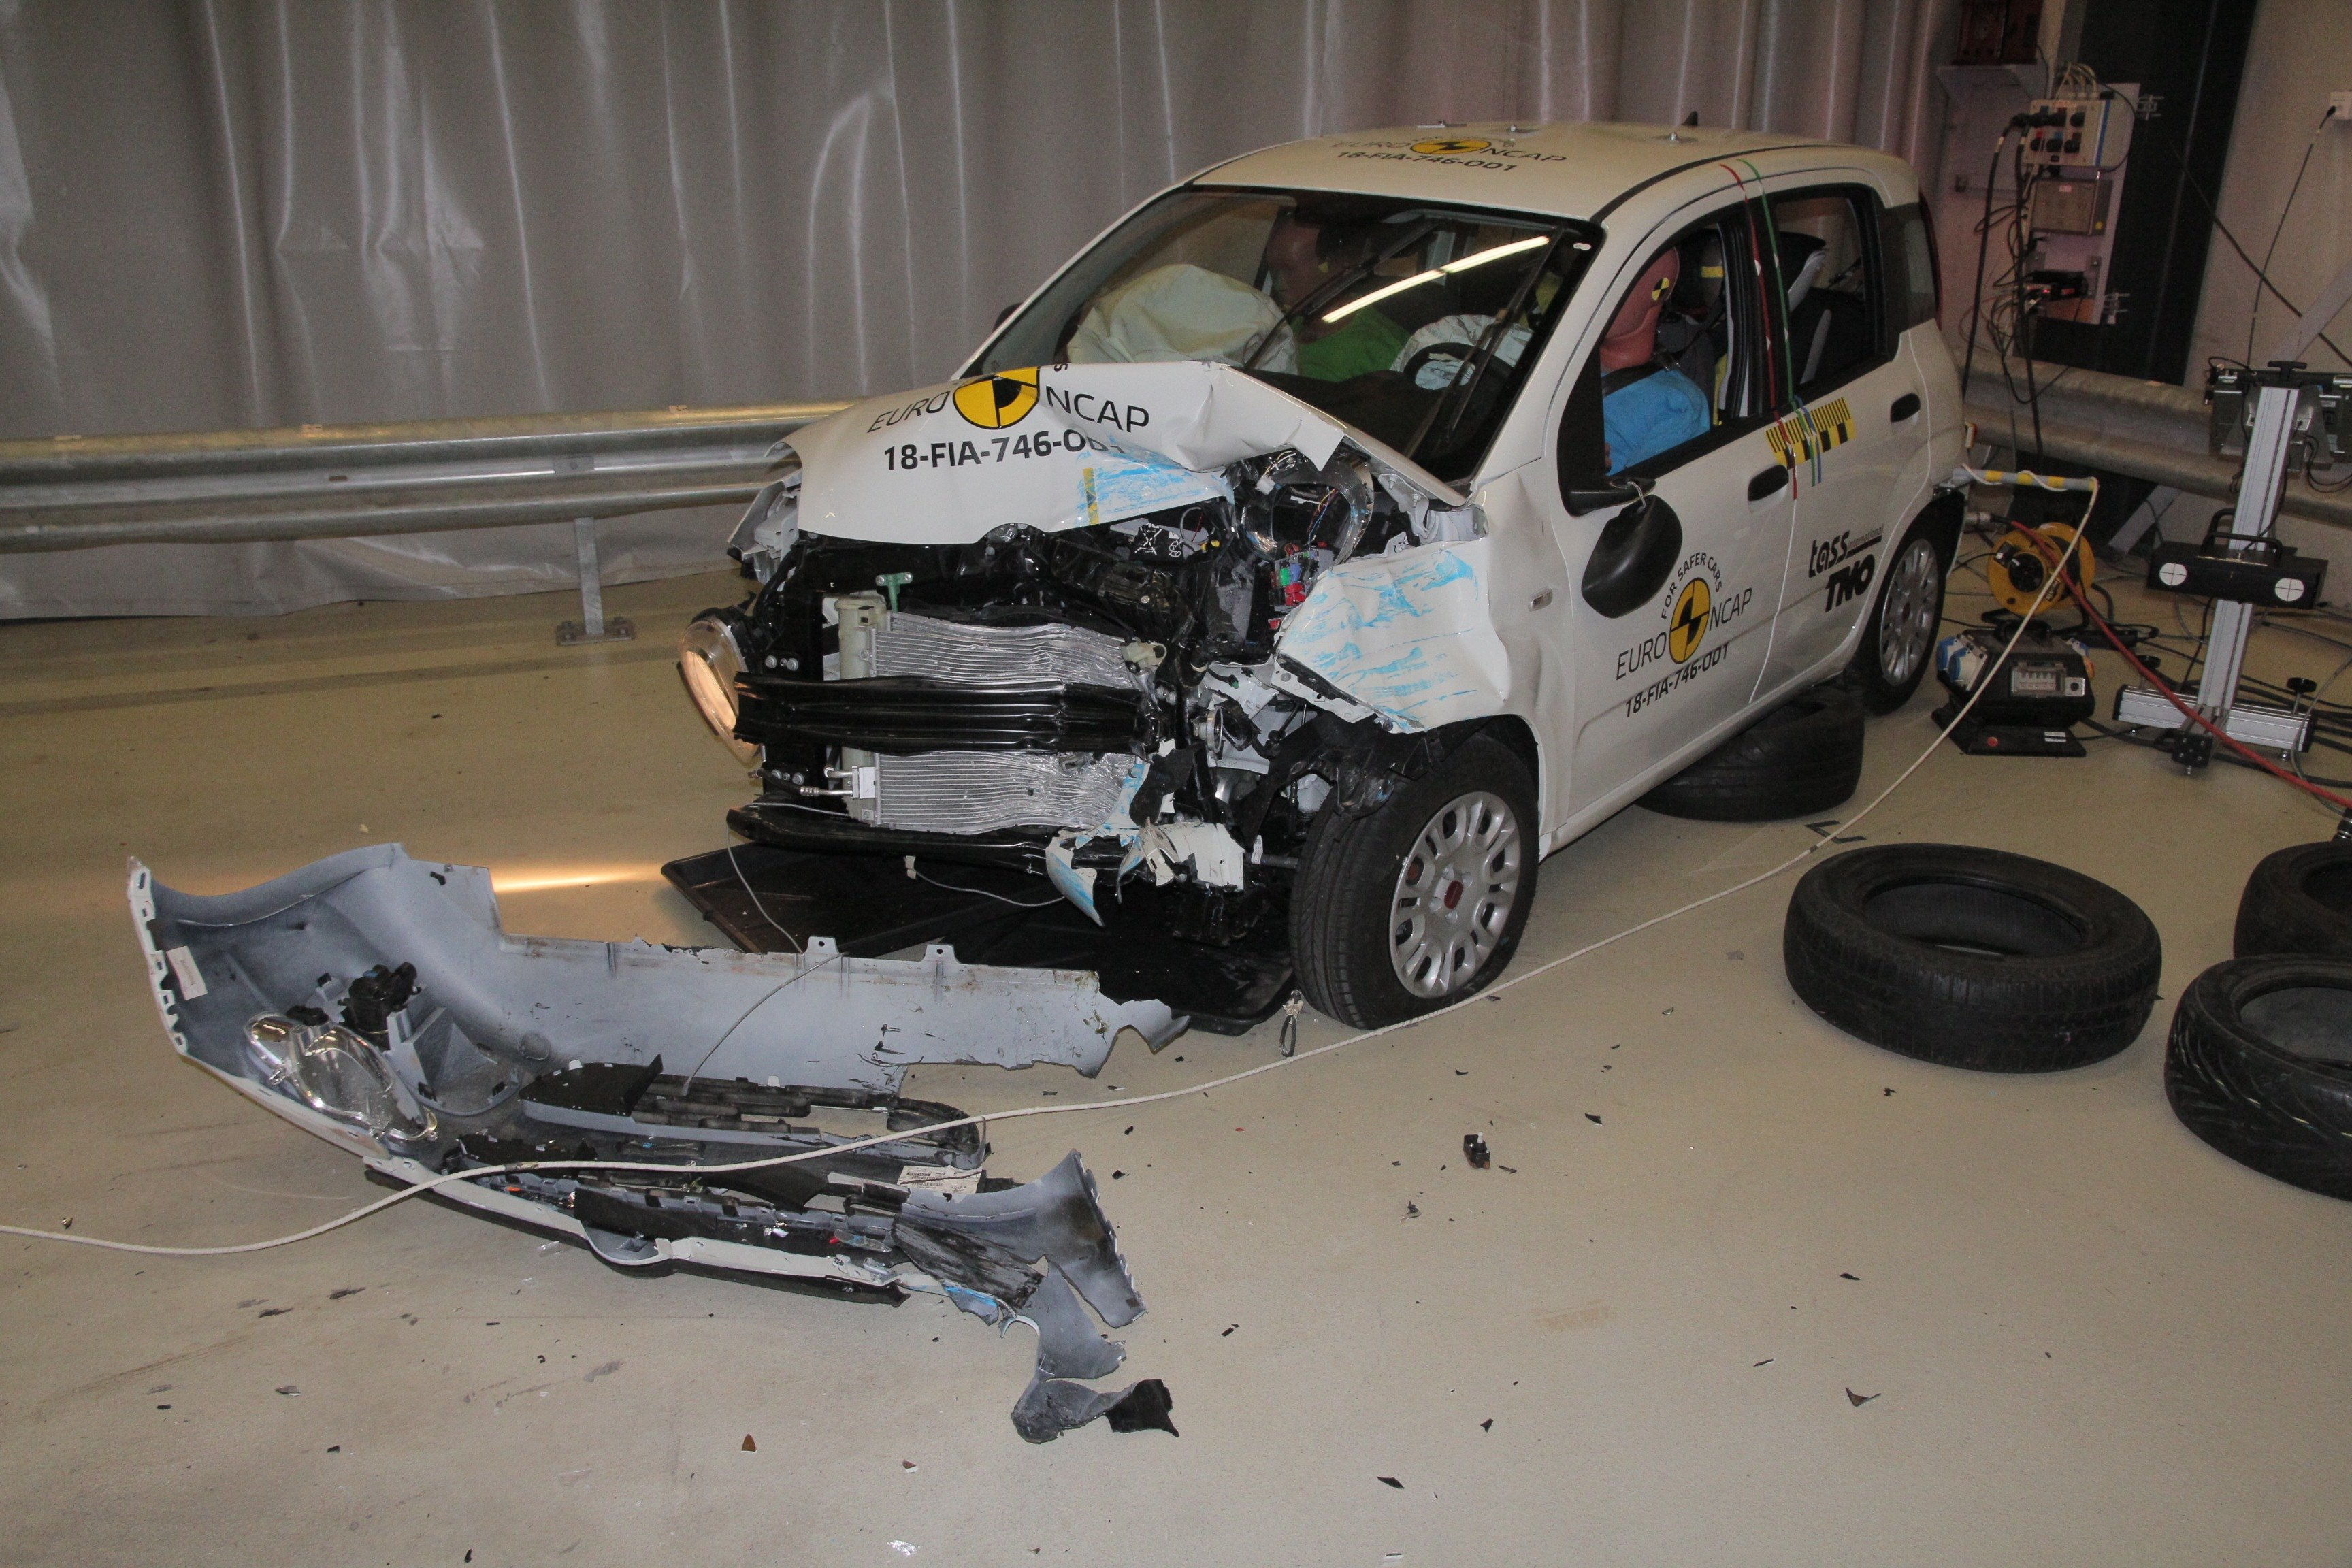 Is The 2018 Fiat Panda a Death Trap  Here s the Crash Test Video ... d3a5f276d